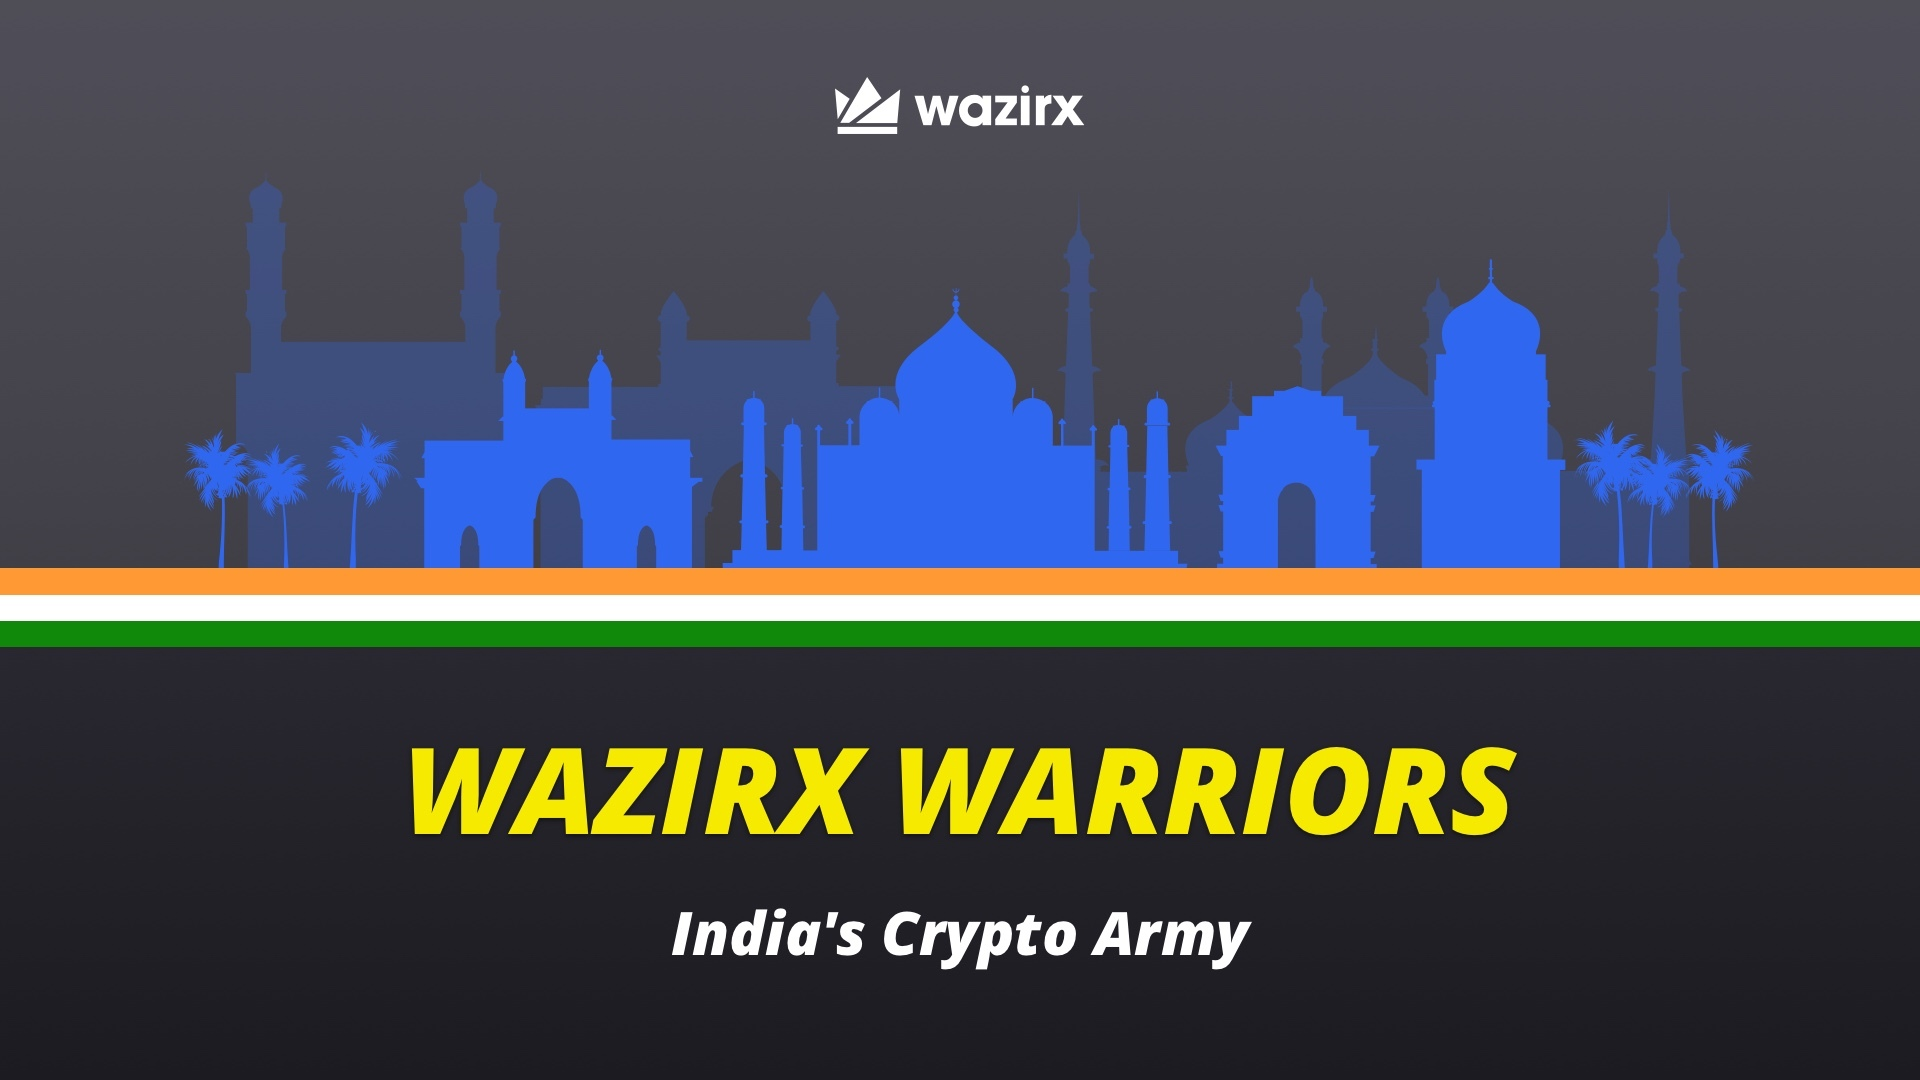 Wazirx warriors